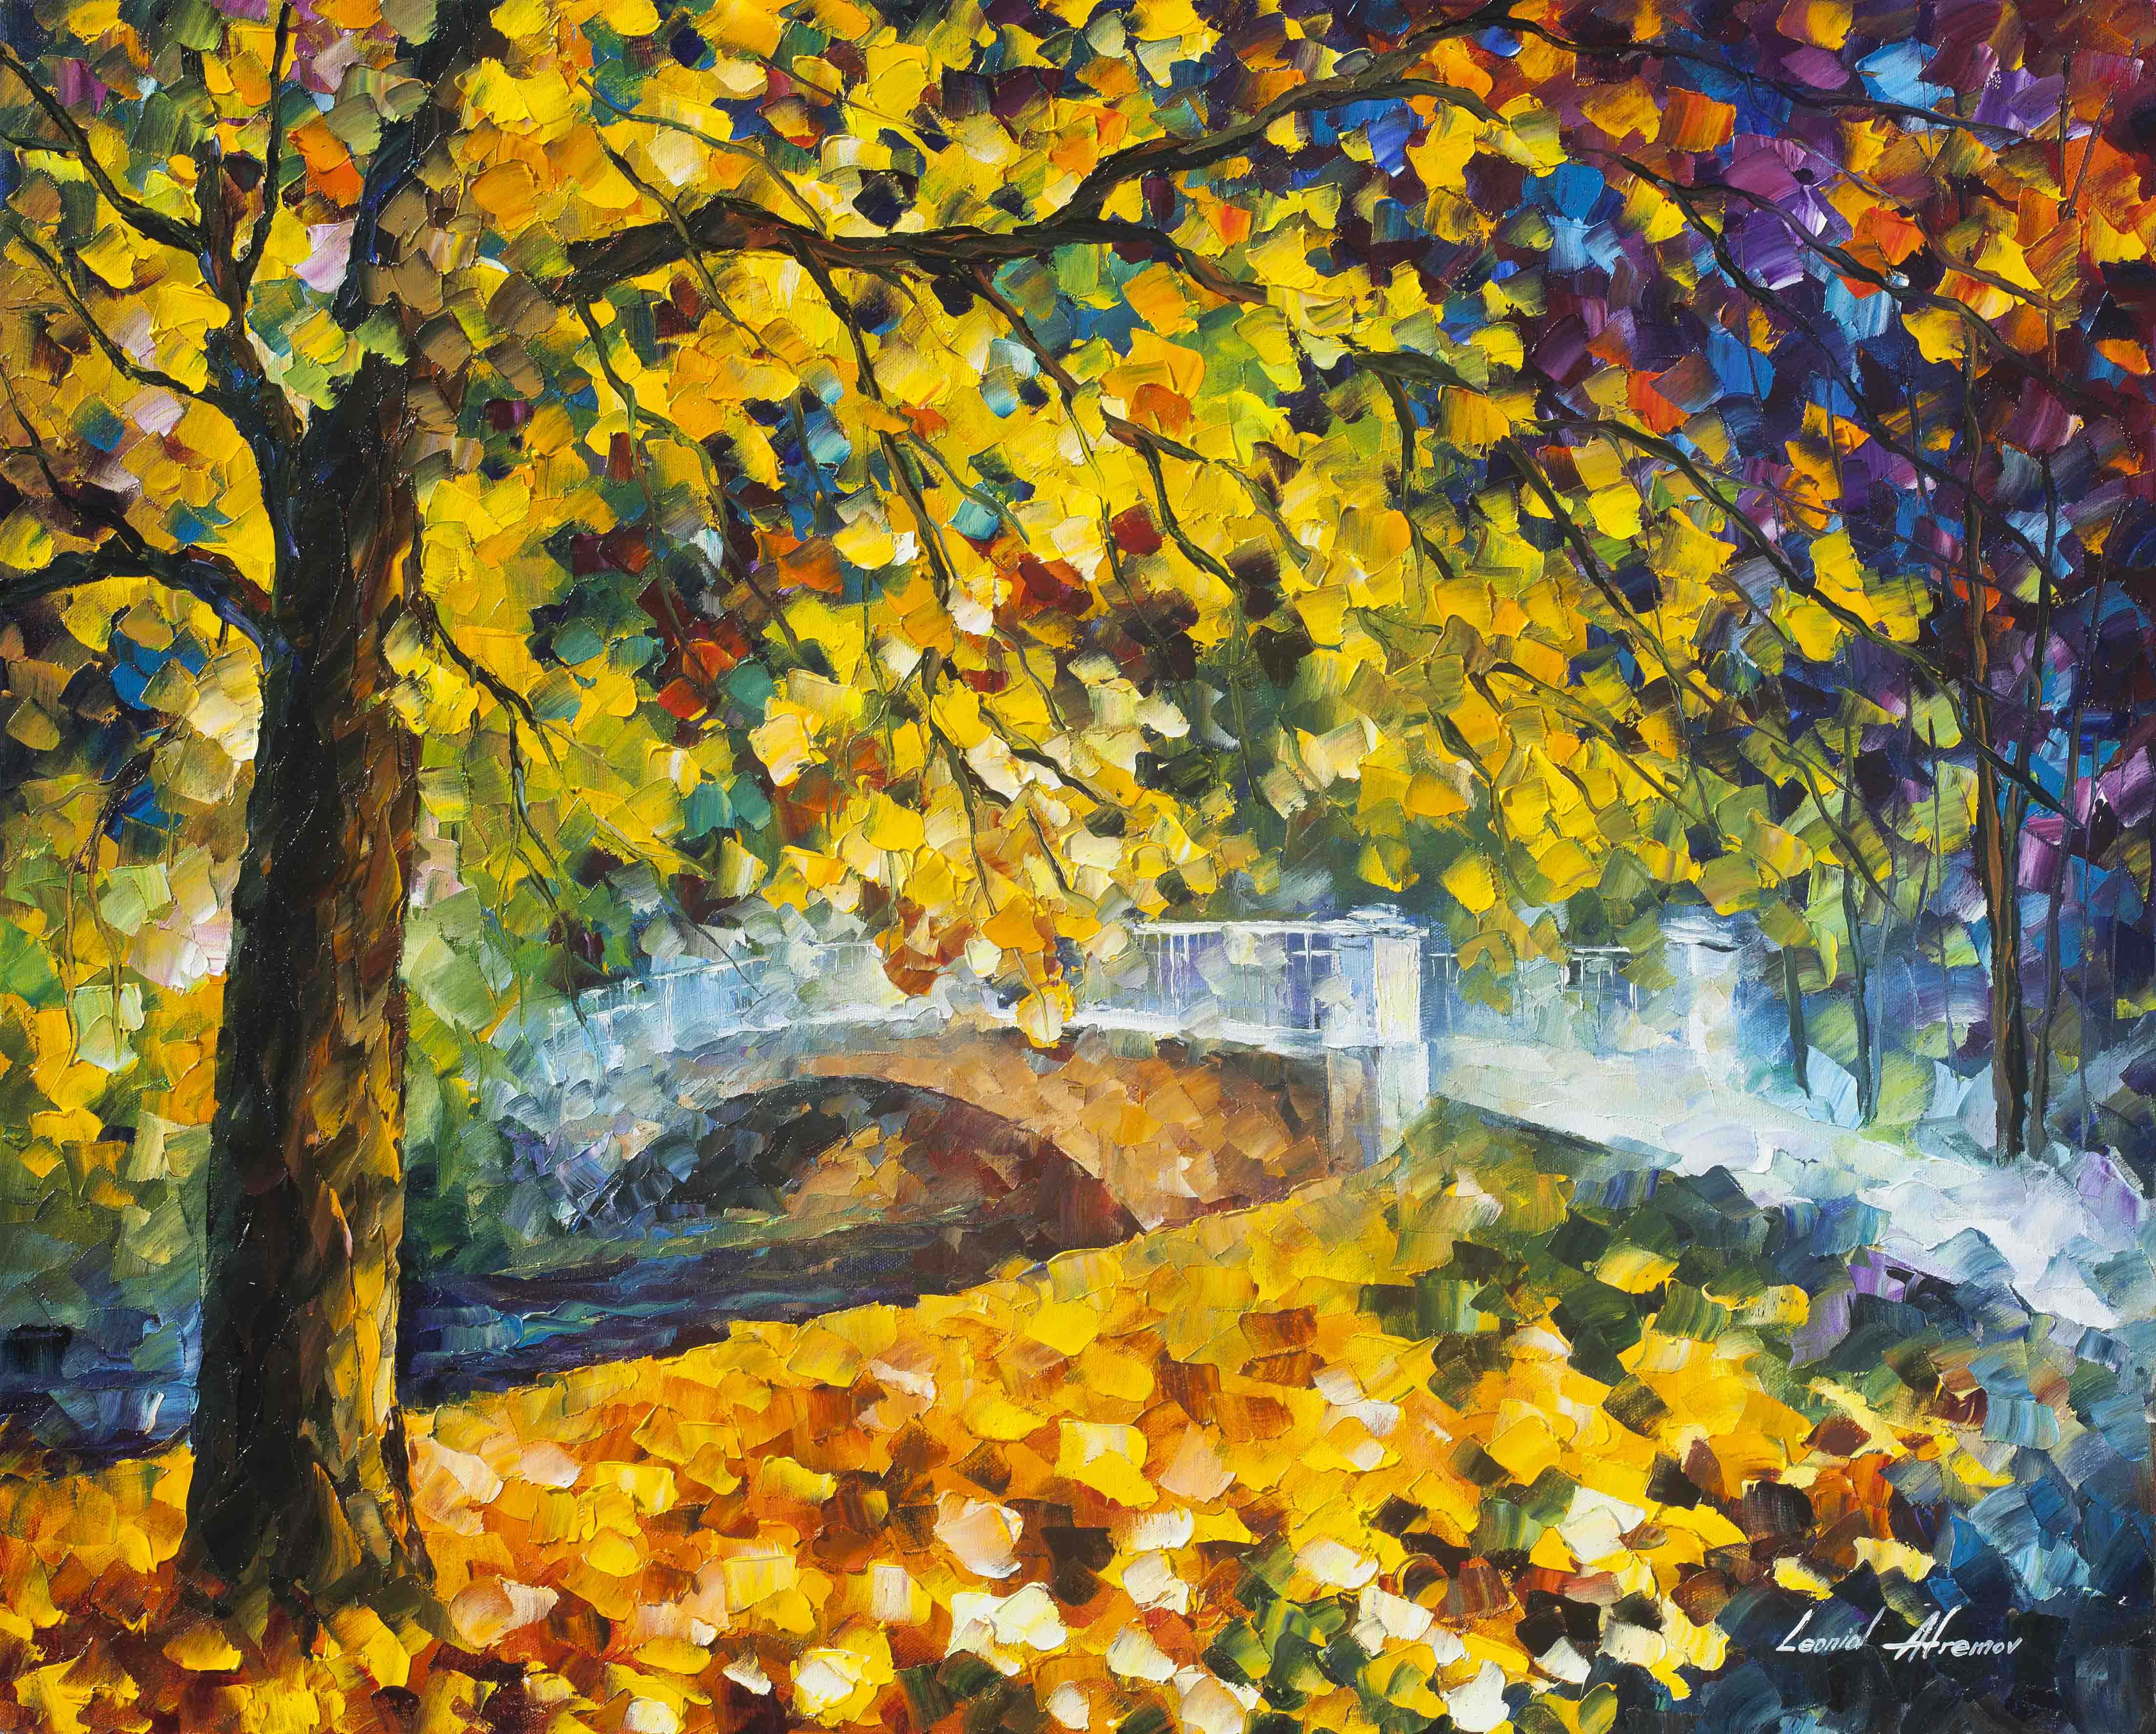 The Autumn Nears Palette Knife Oil Painting On Canvas By